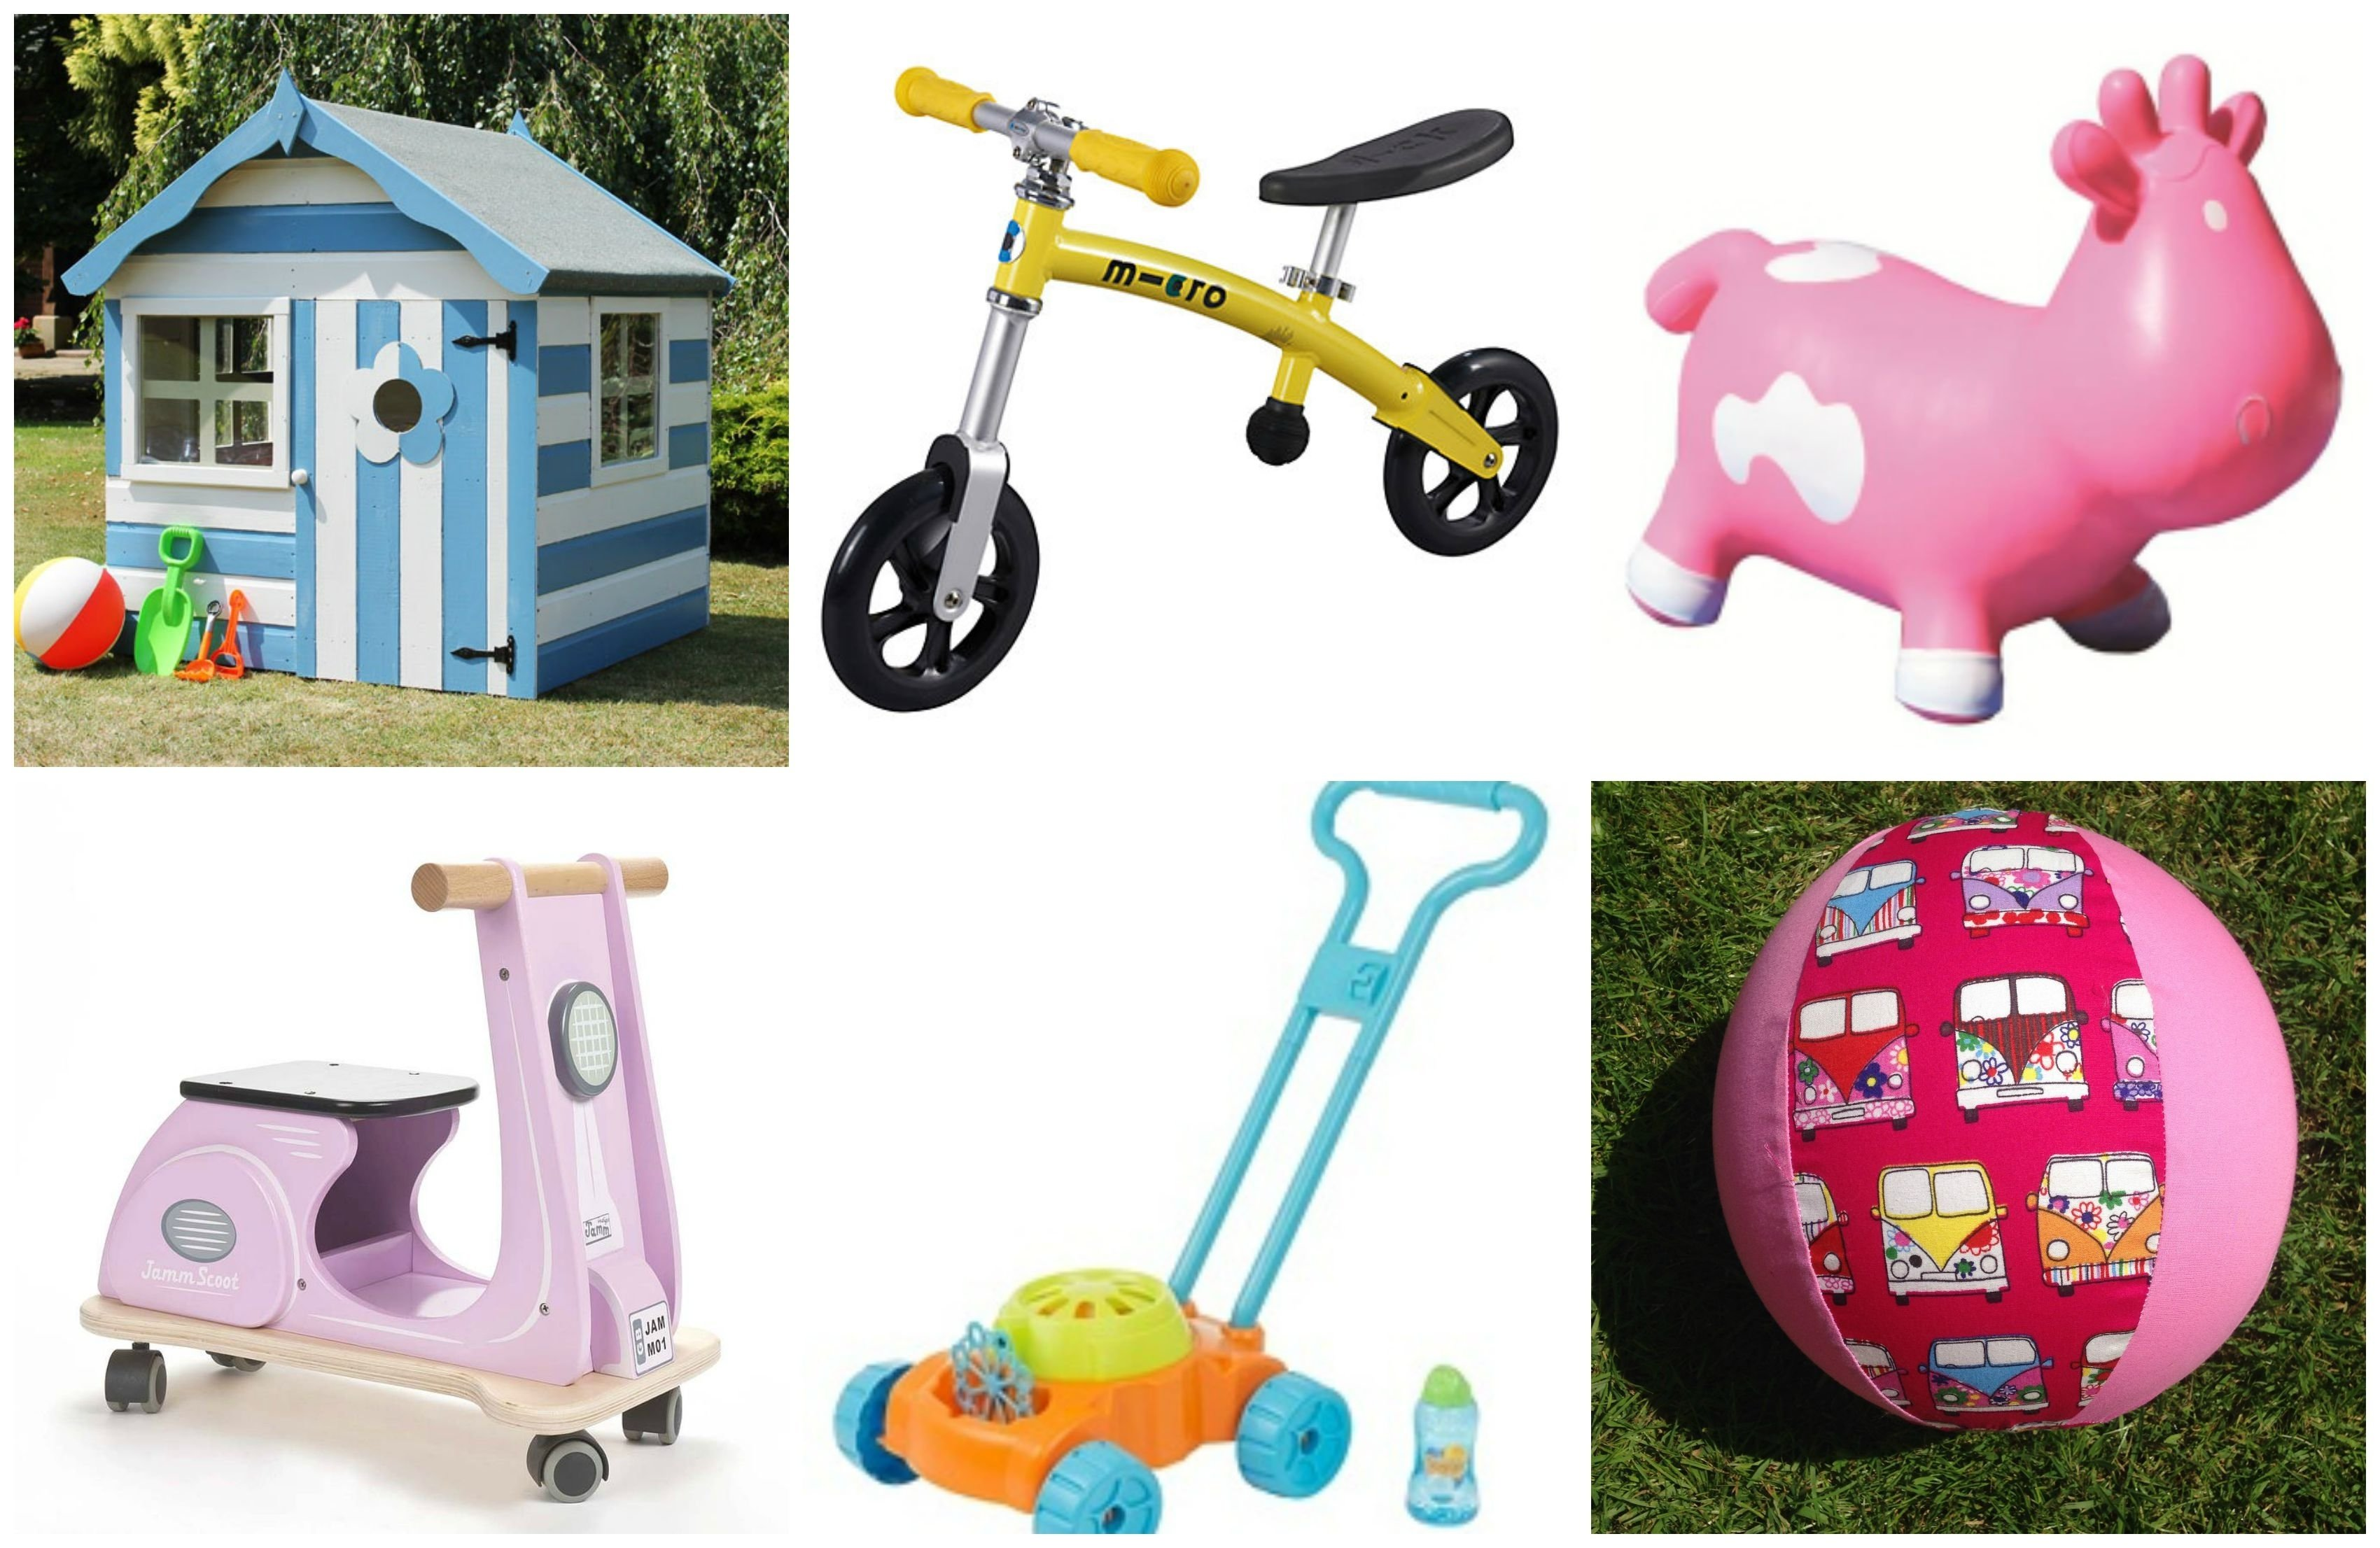 10 Awesome Toy Ideas For 2 Year Olds 2 year old birthday gift guide newyoungmum 3 2020